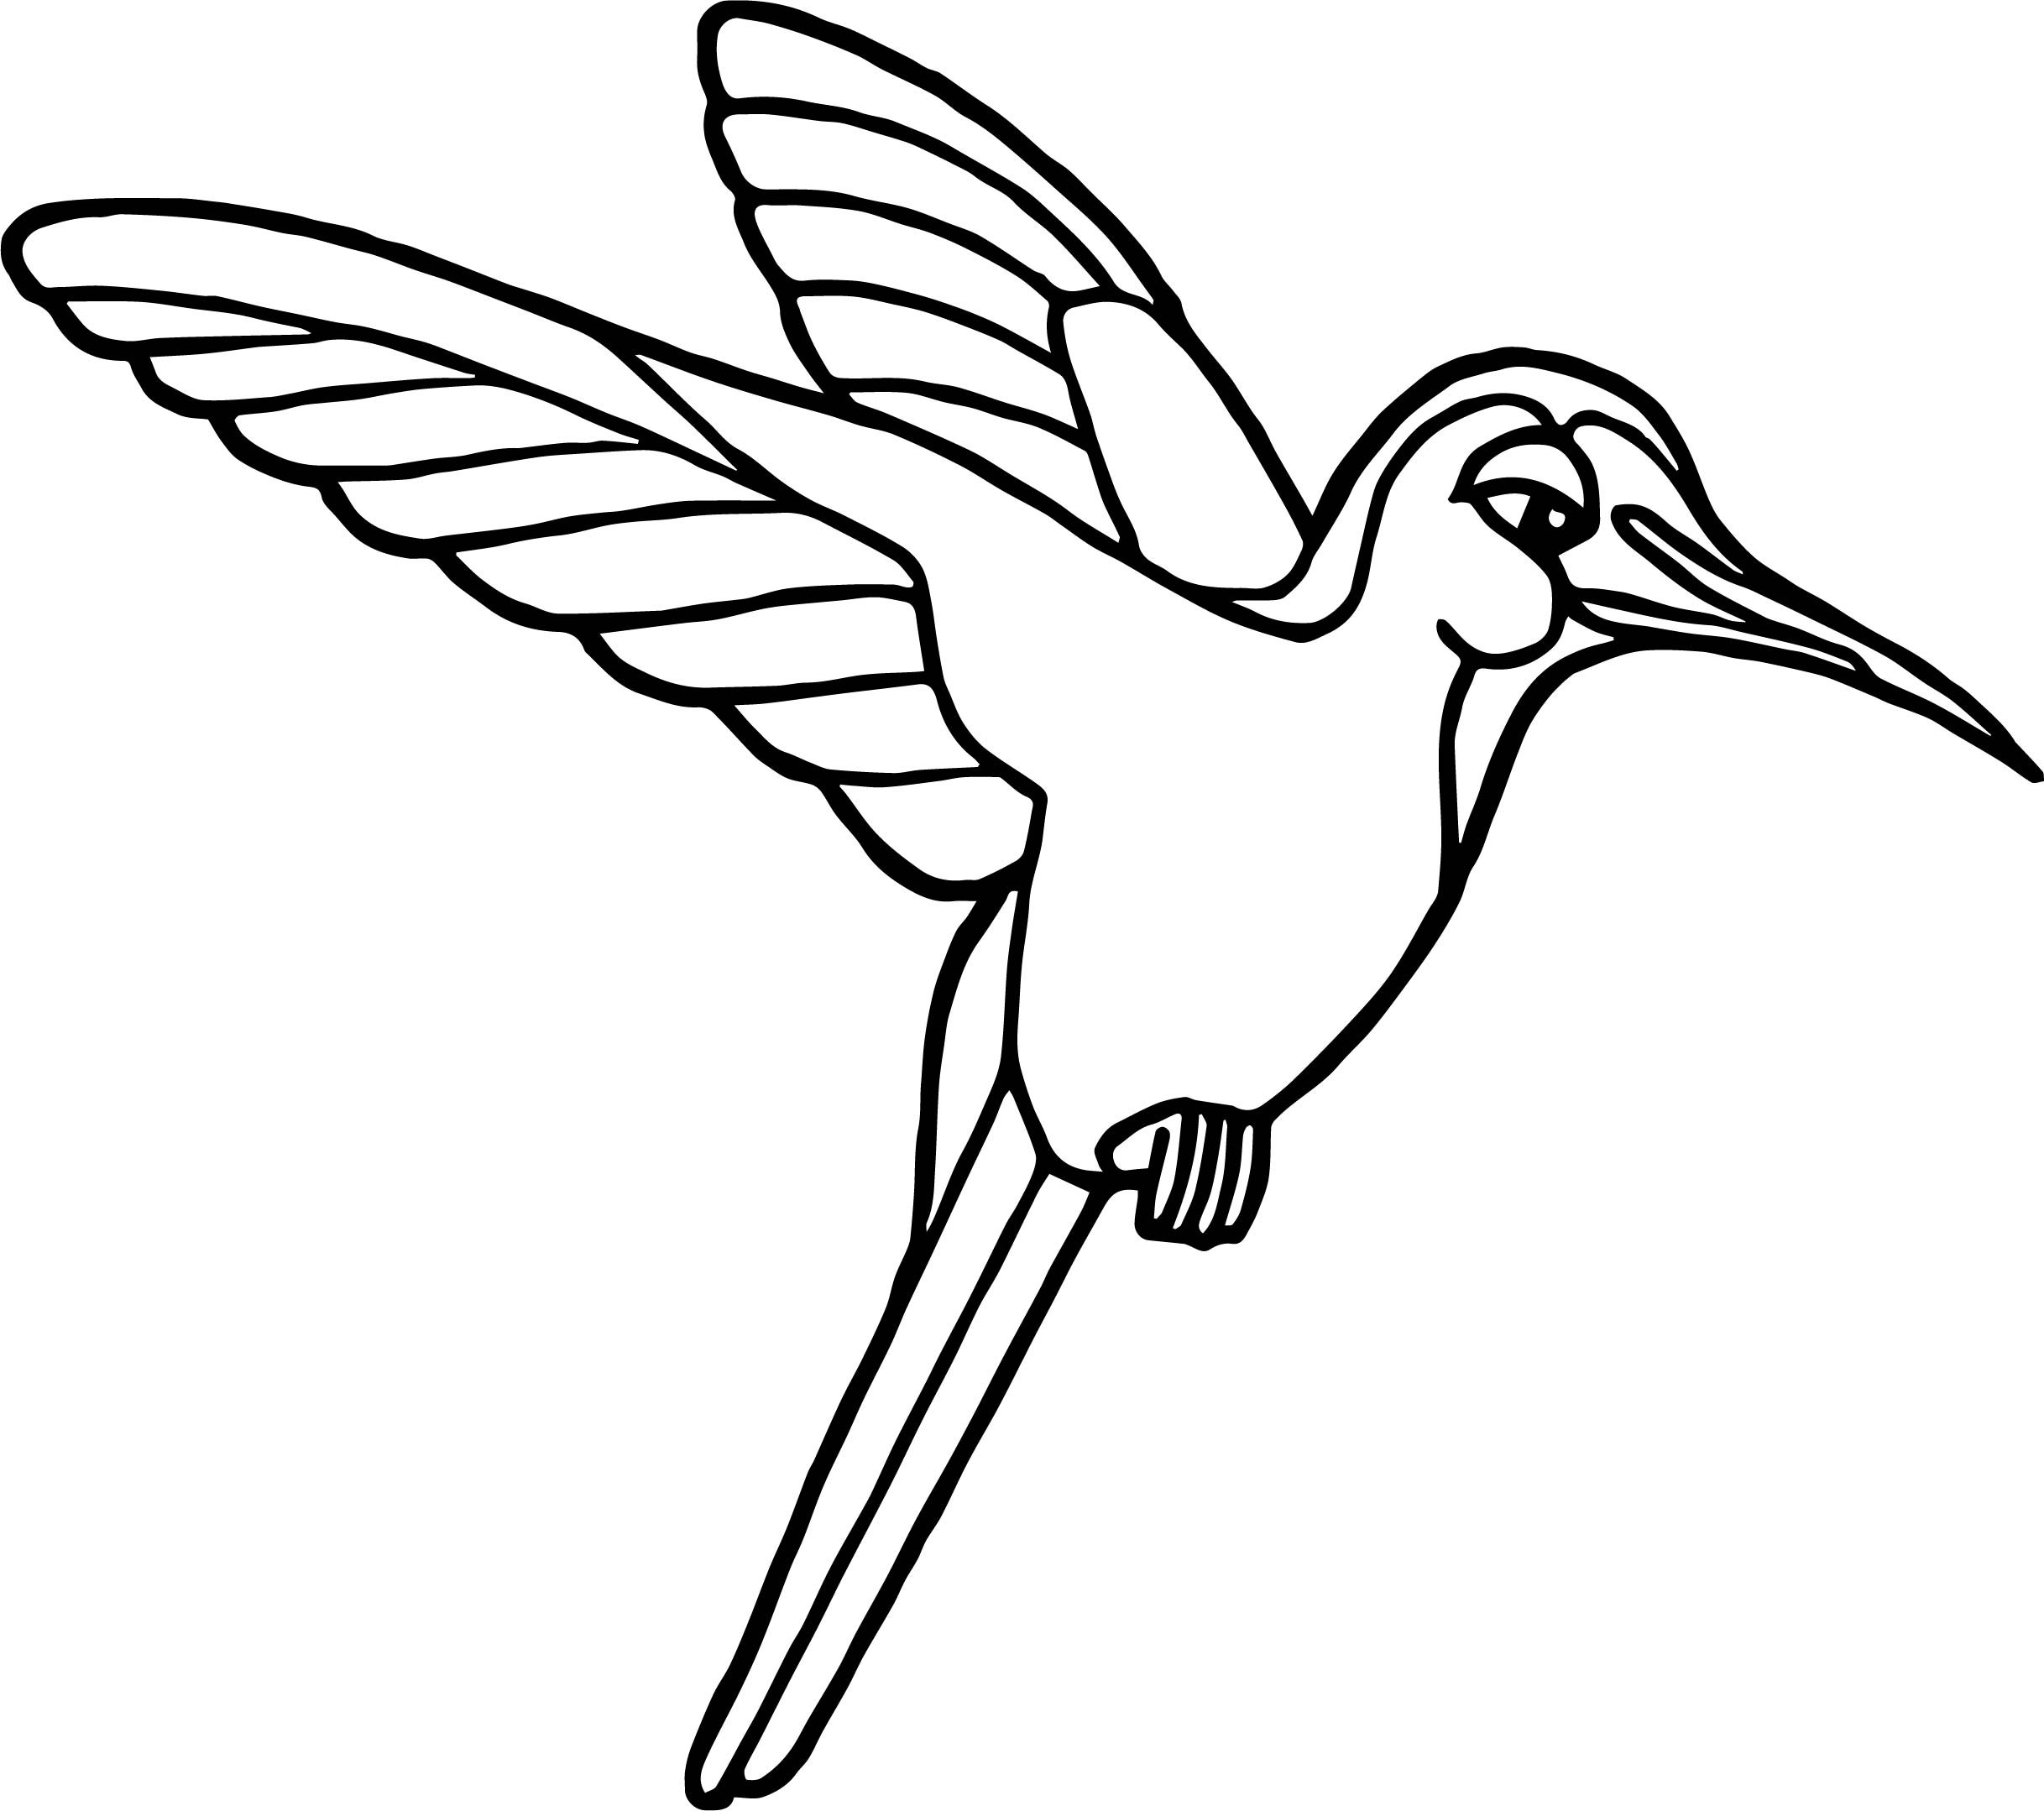 Rainforest Birds Coloring Pages At Getcolorings